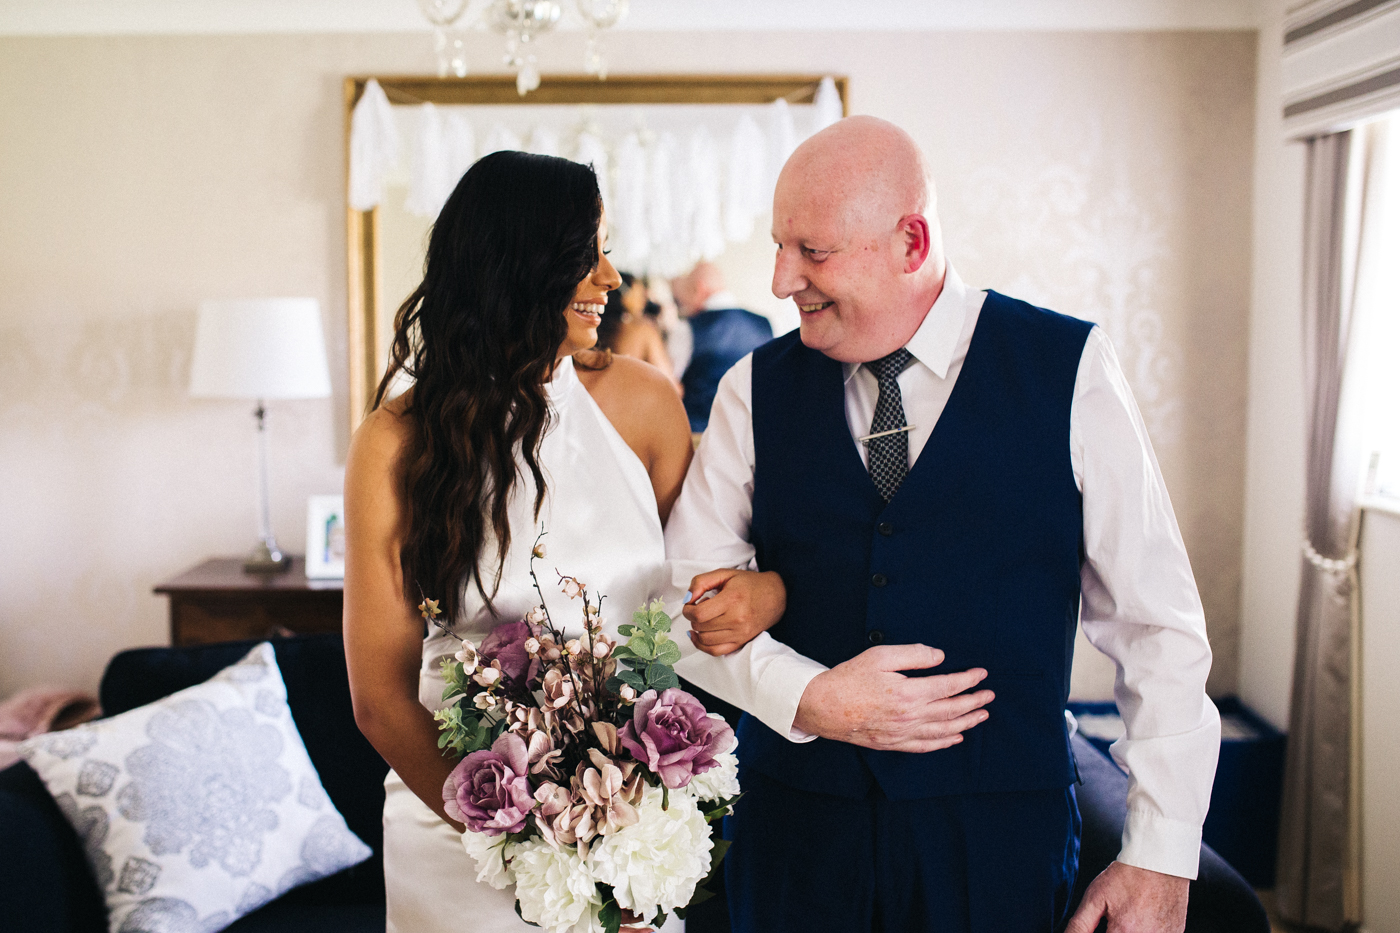 the bride and her dad look at each other smiling. relaxed teesside middlesbrough wedding photographer, wedding at home